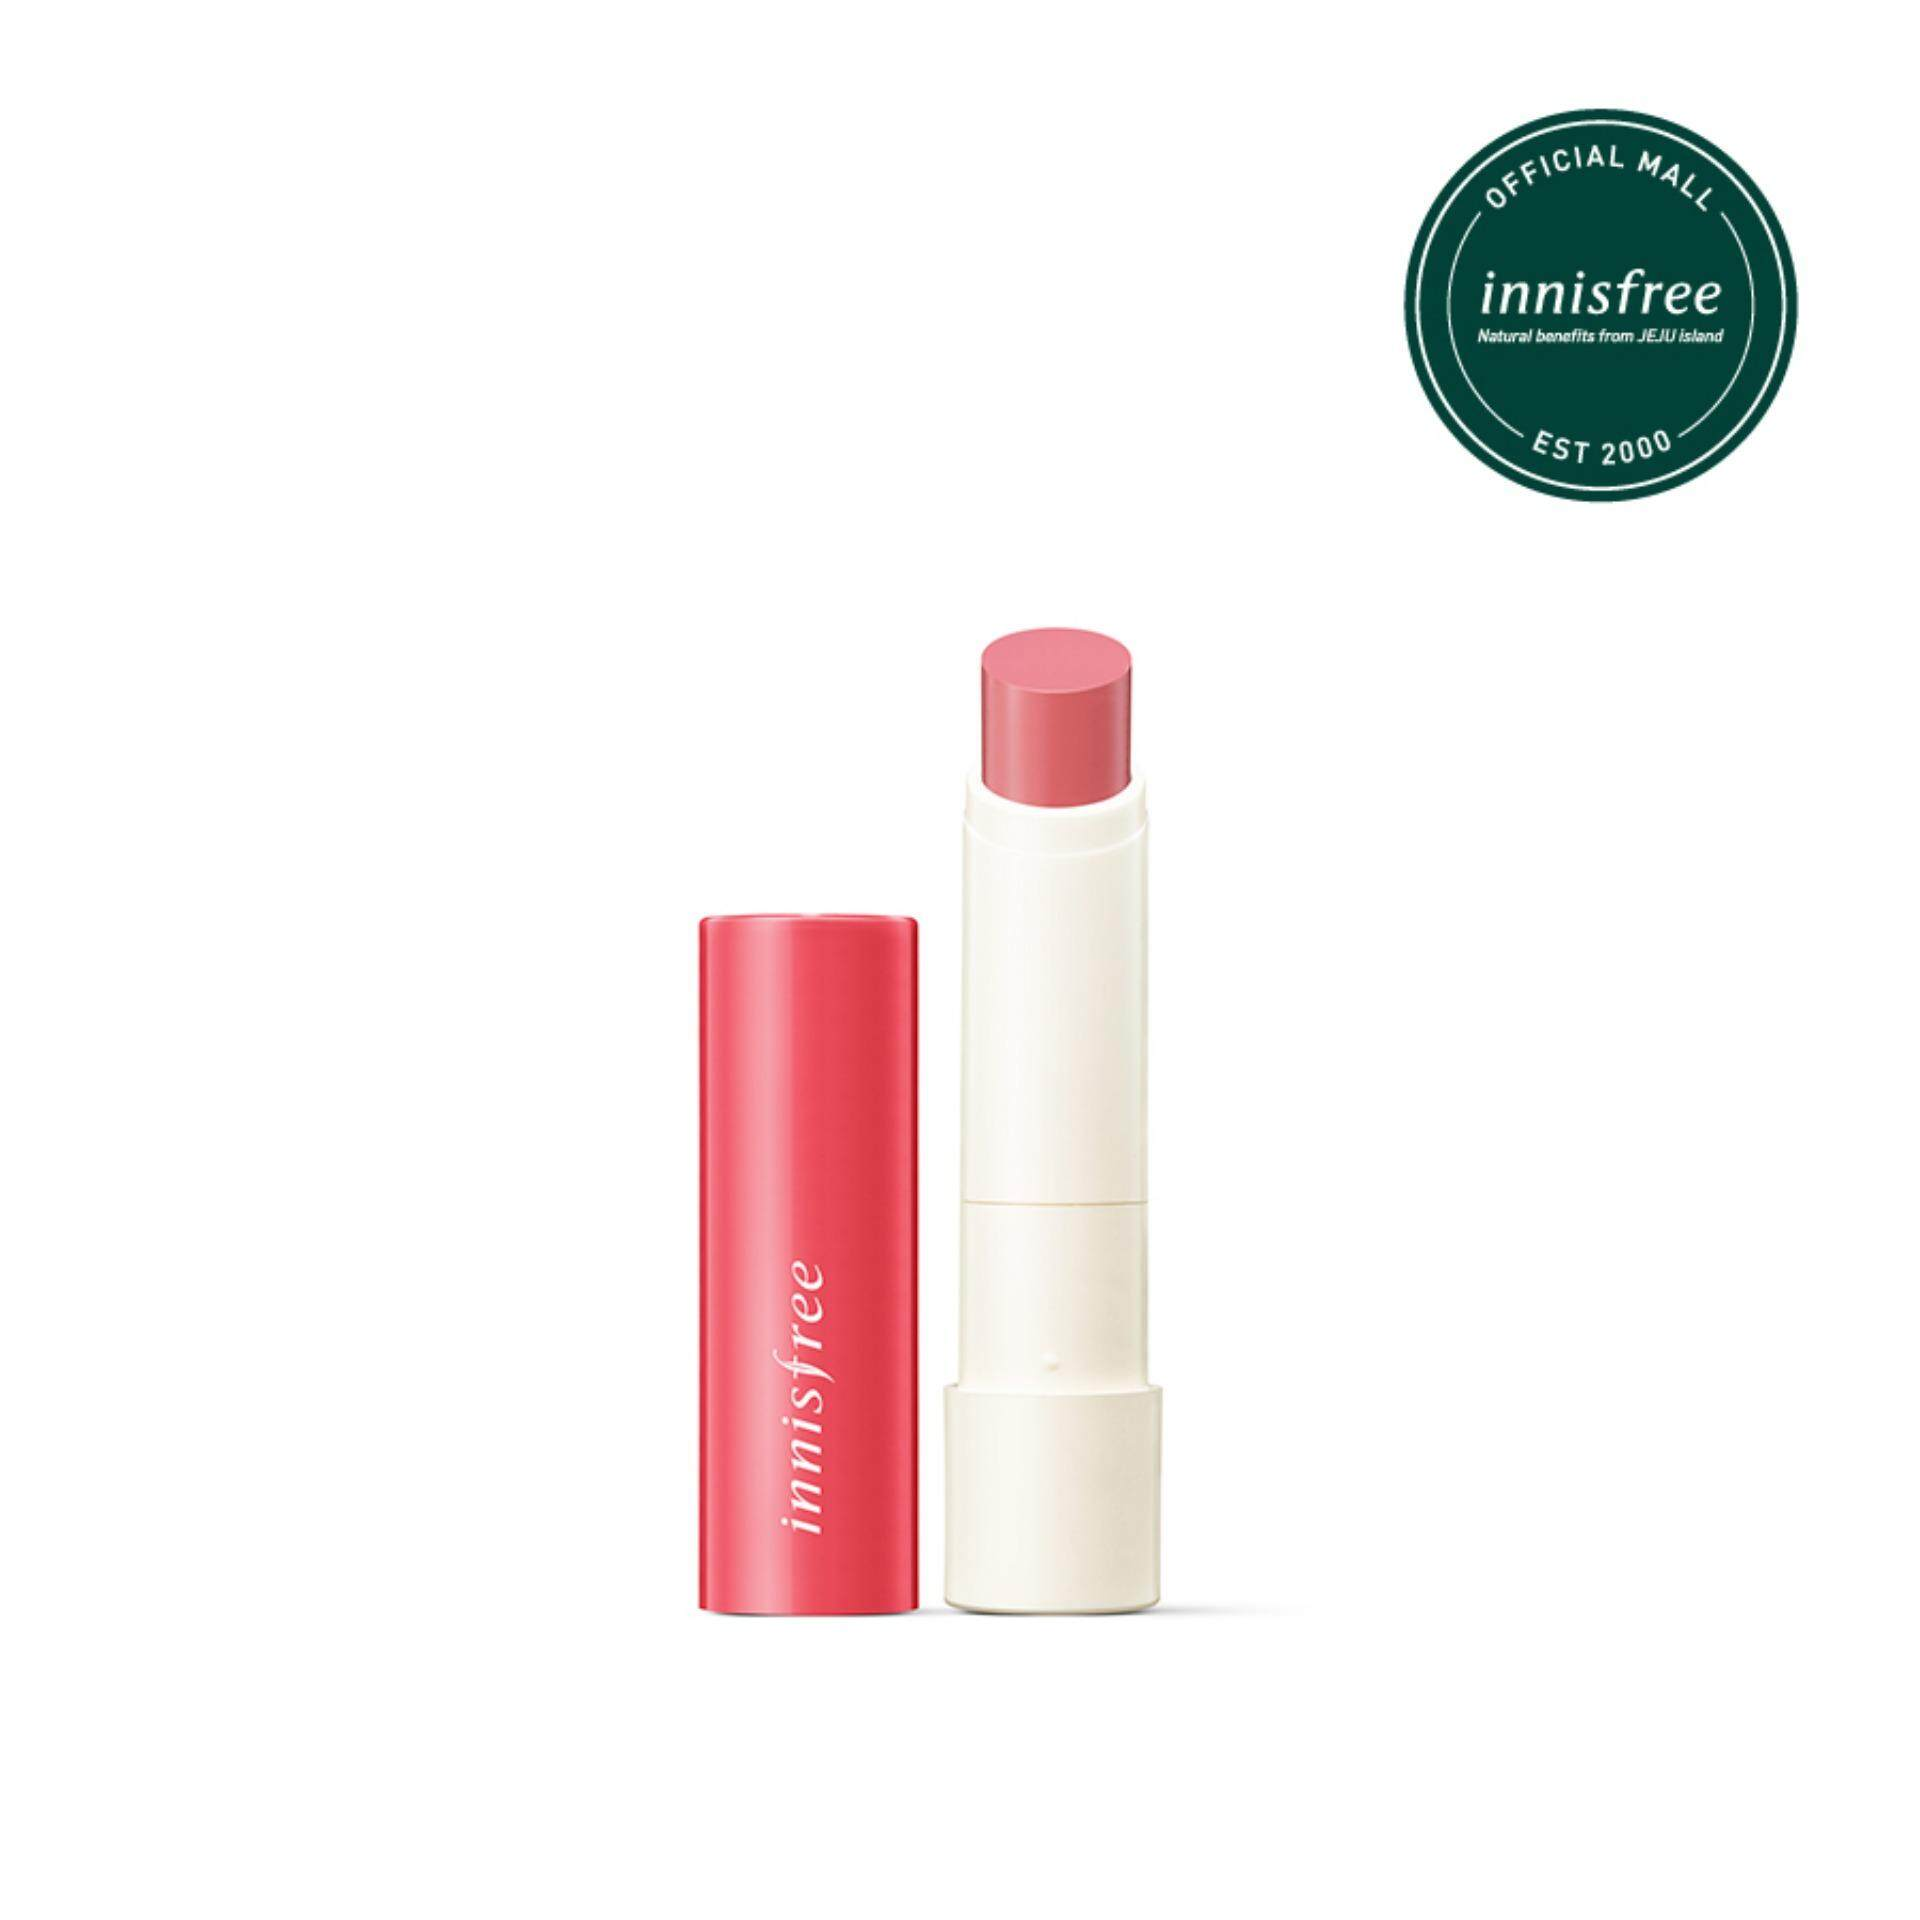 Innisfree Glow Tint Lip Balm No.02 (3.5g) By Innisfree Official Store.